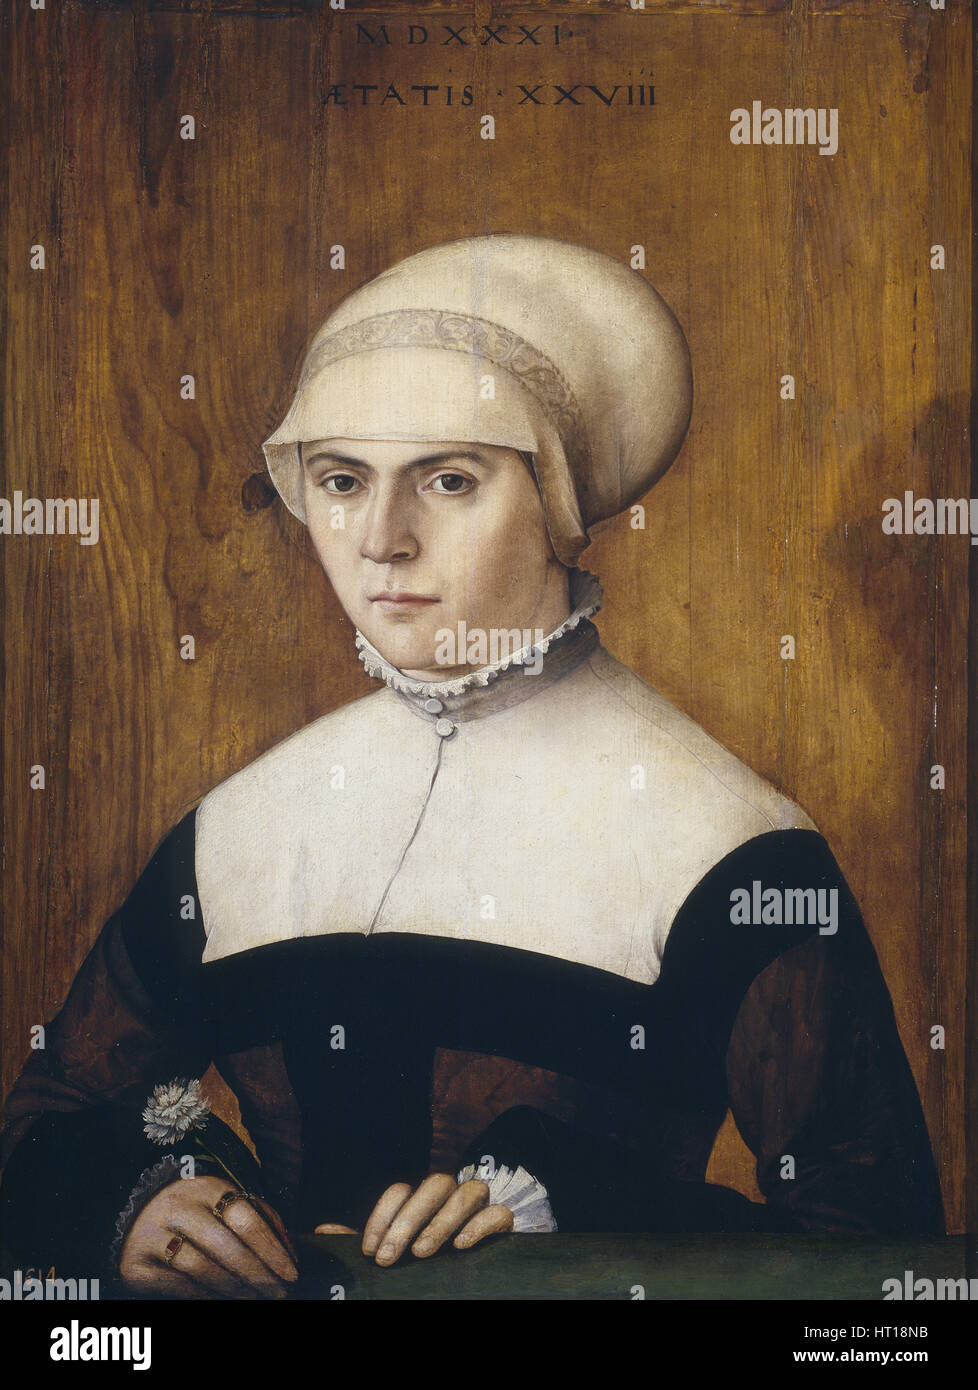 The wife of Jörg Zörer, at the age of 28, 1531. Artist: Amberger, Christoph (ca. 1500-1562) - Stock Image